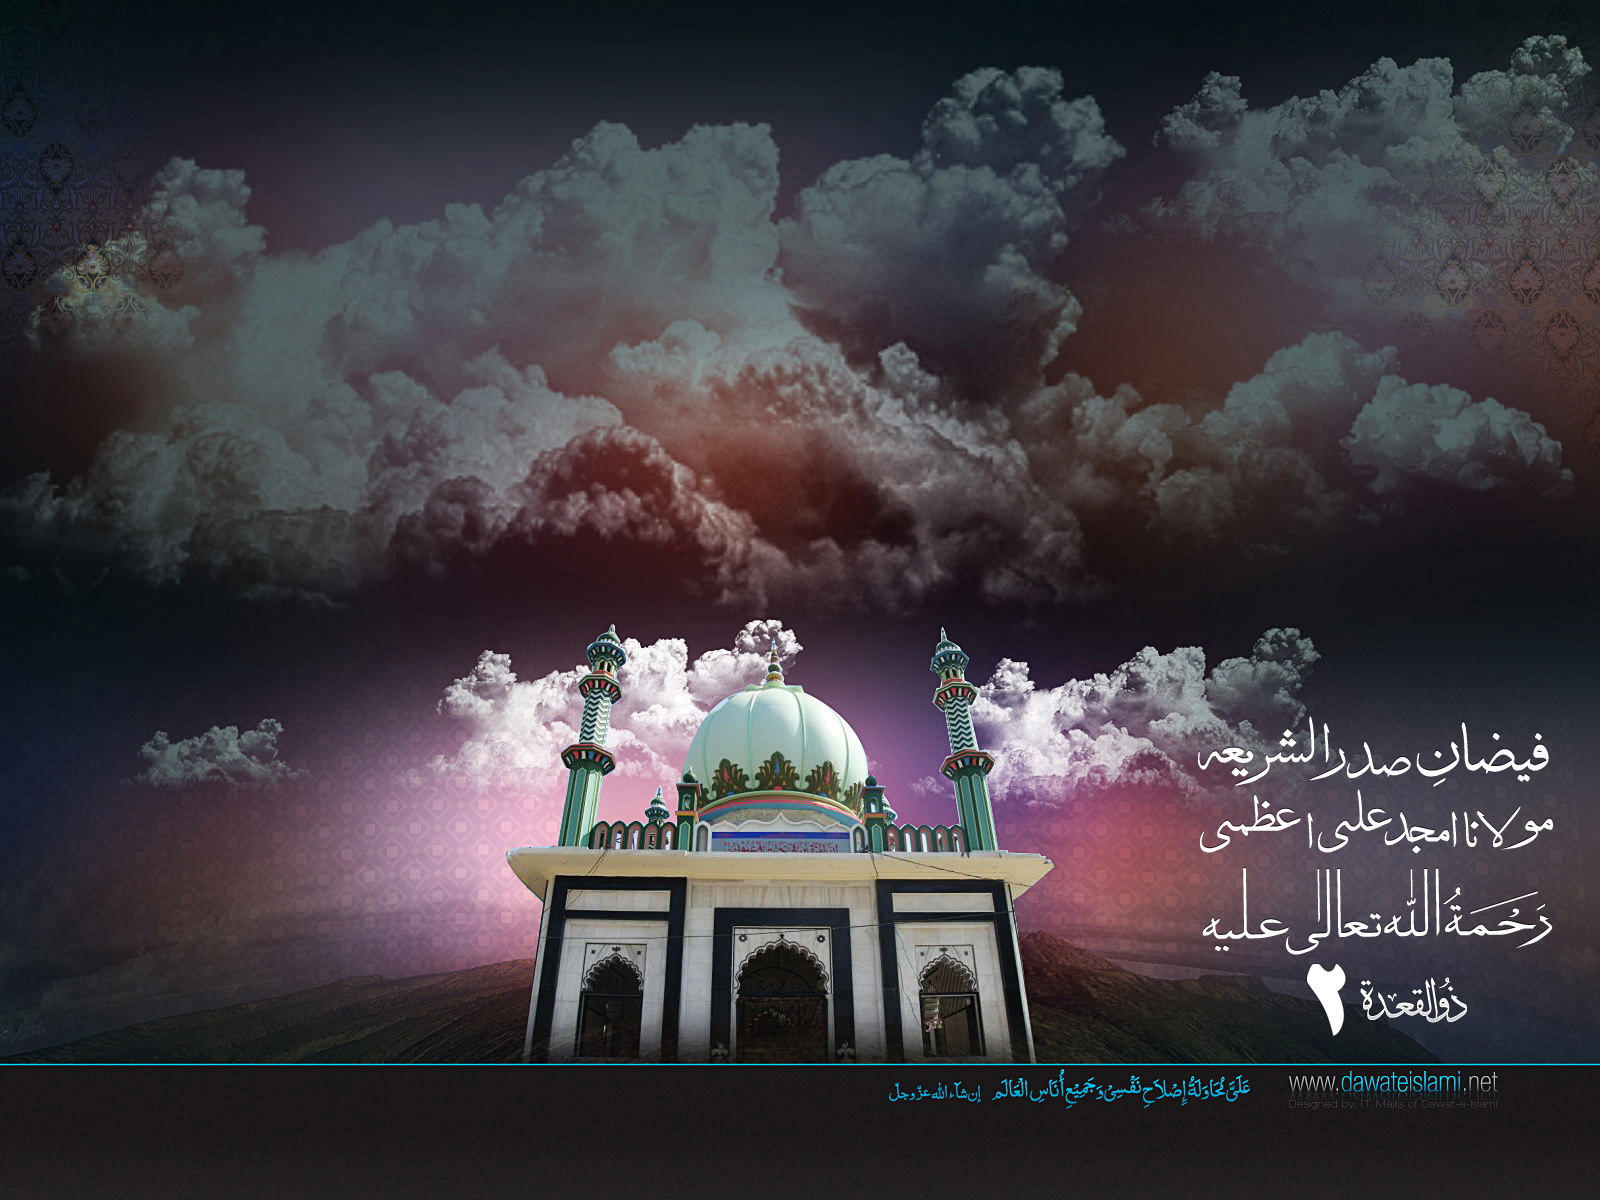 Wallpapers Faizan-e-Sadrush-shariah 2